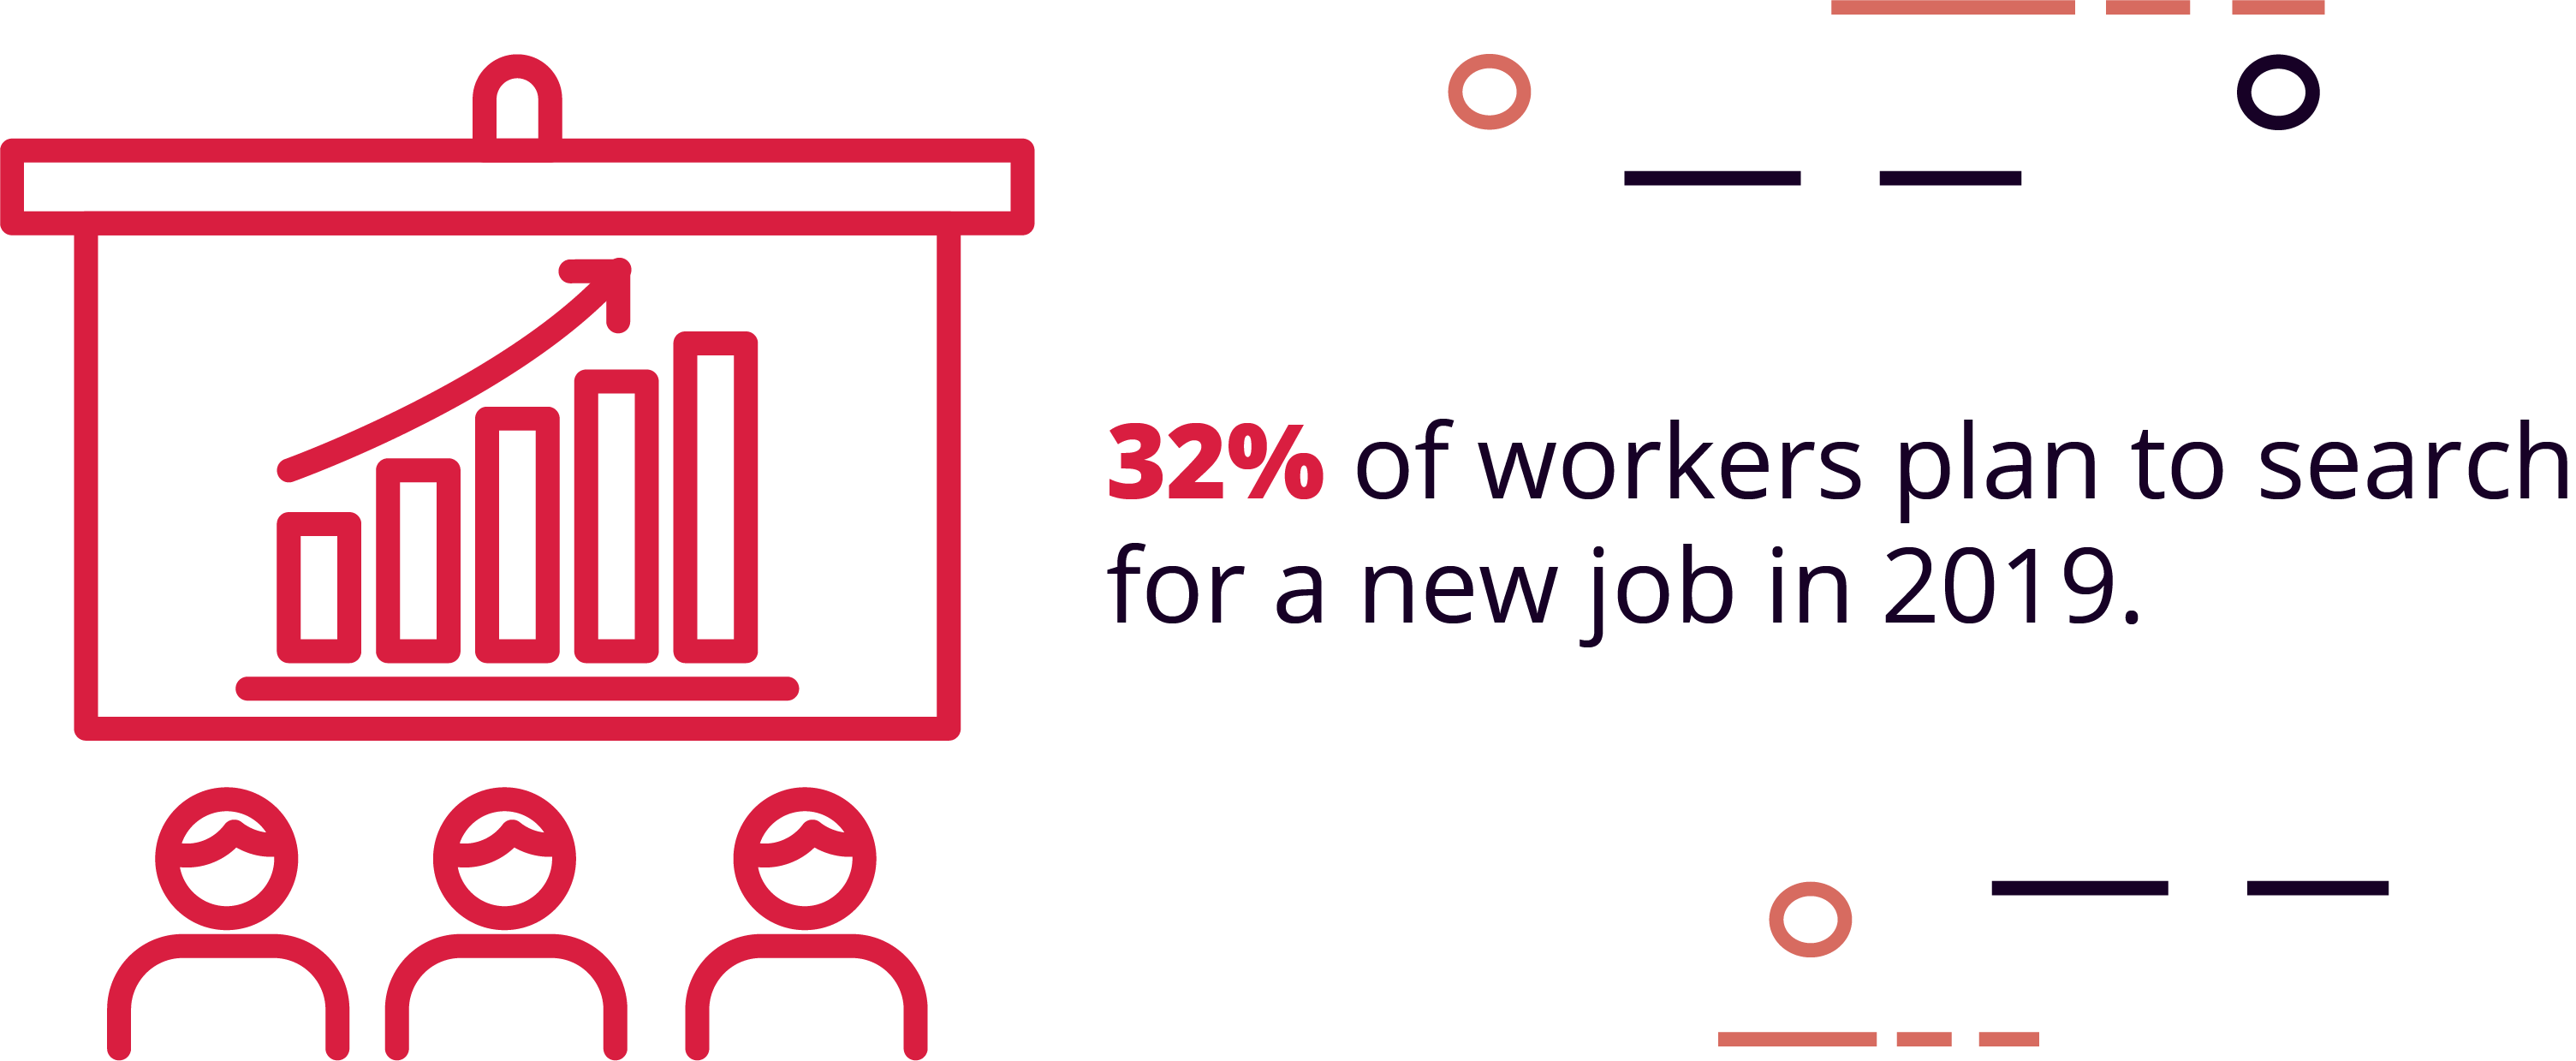 32% of Workers Plan to Look for New Work in 2019